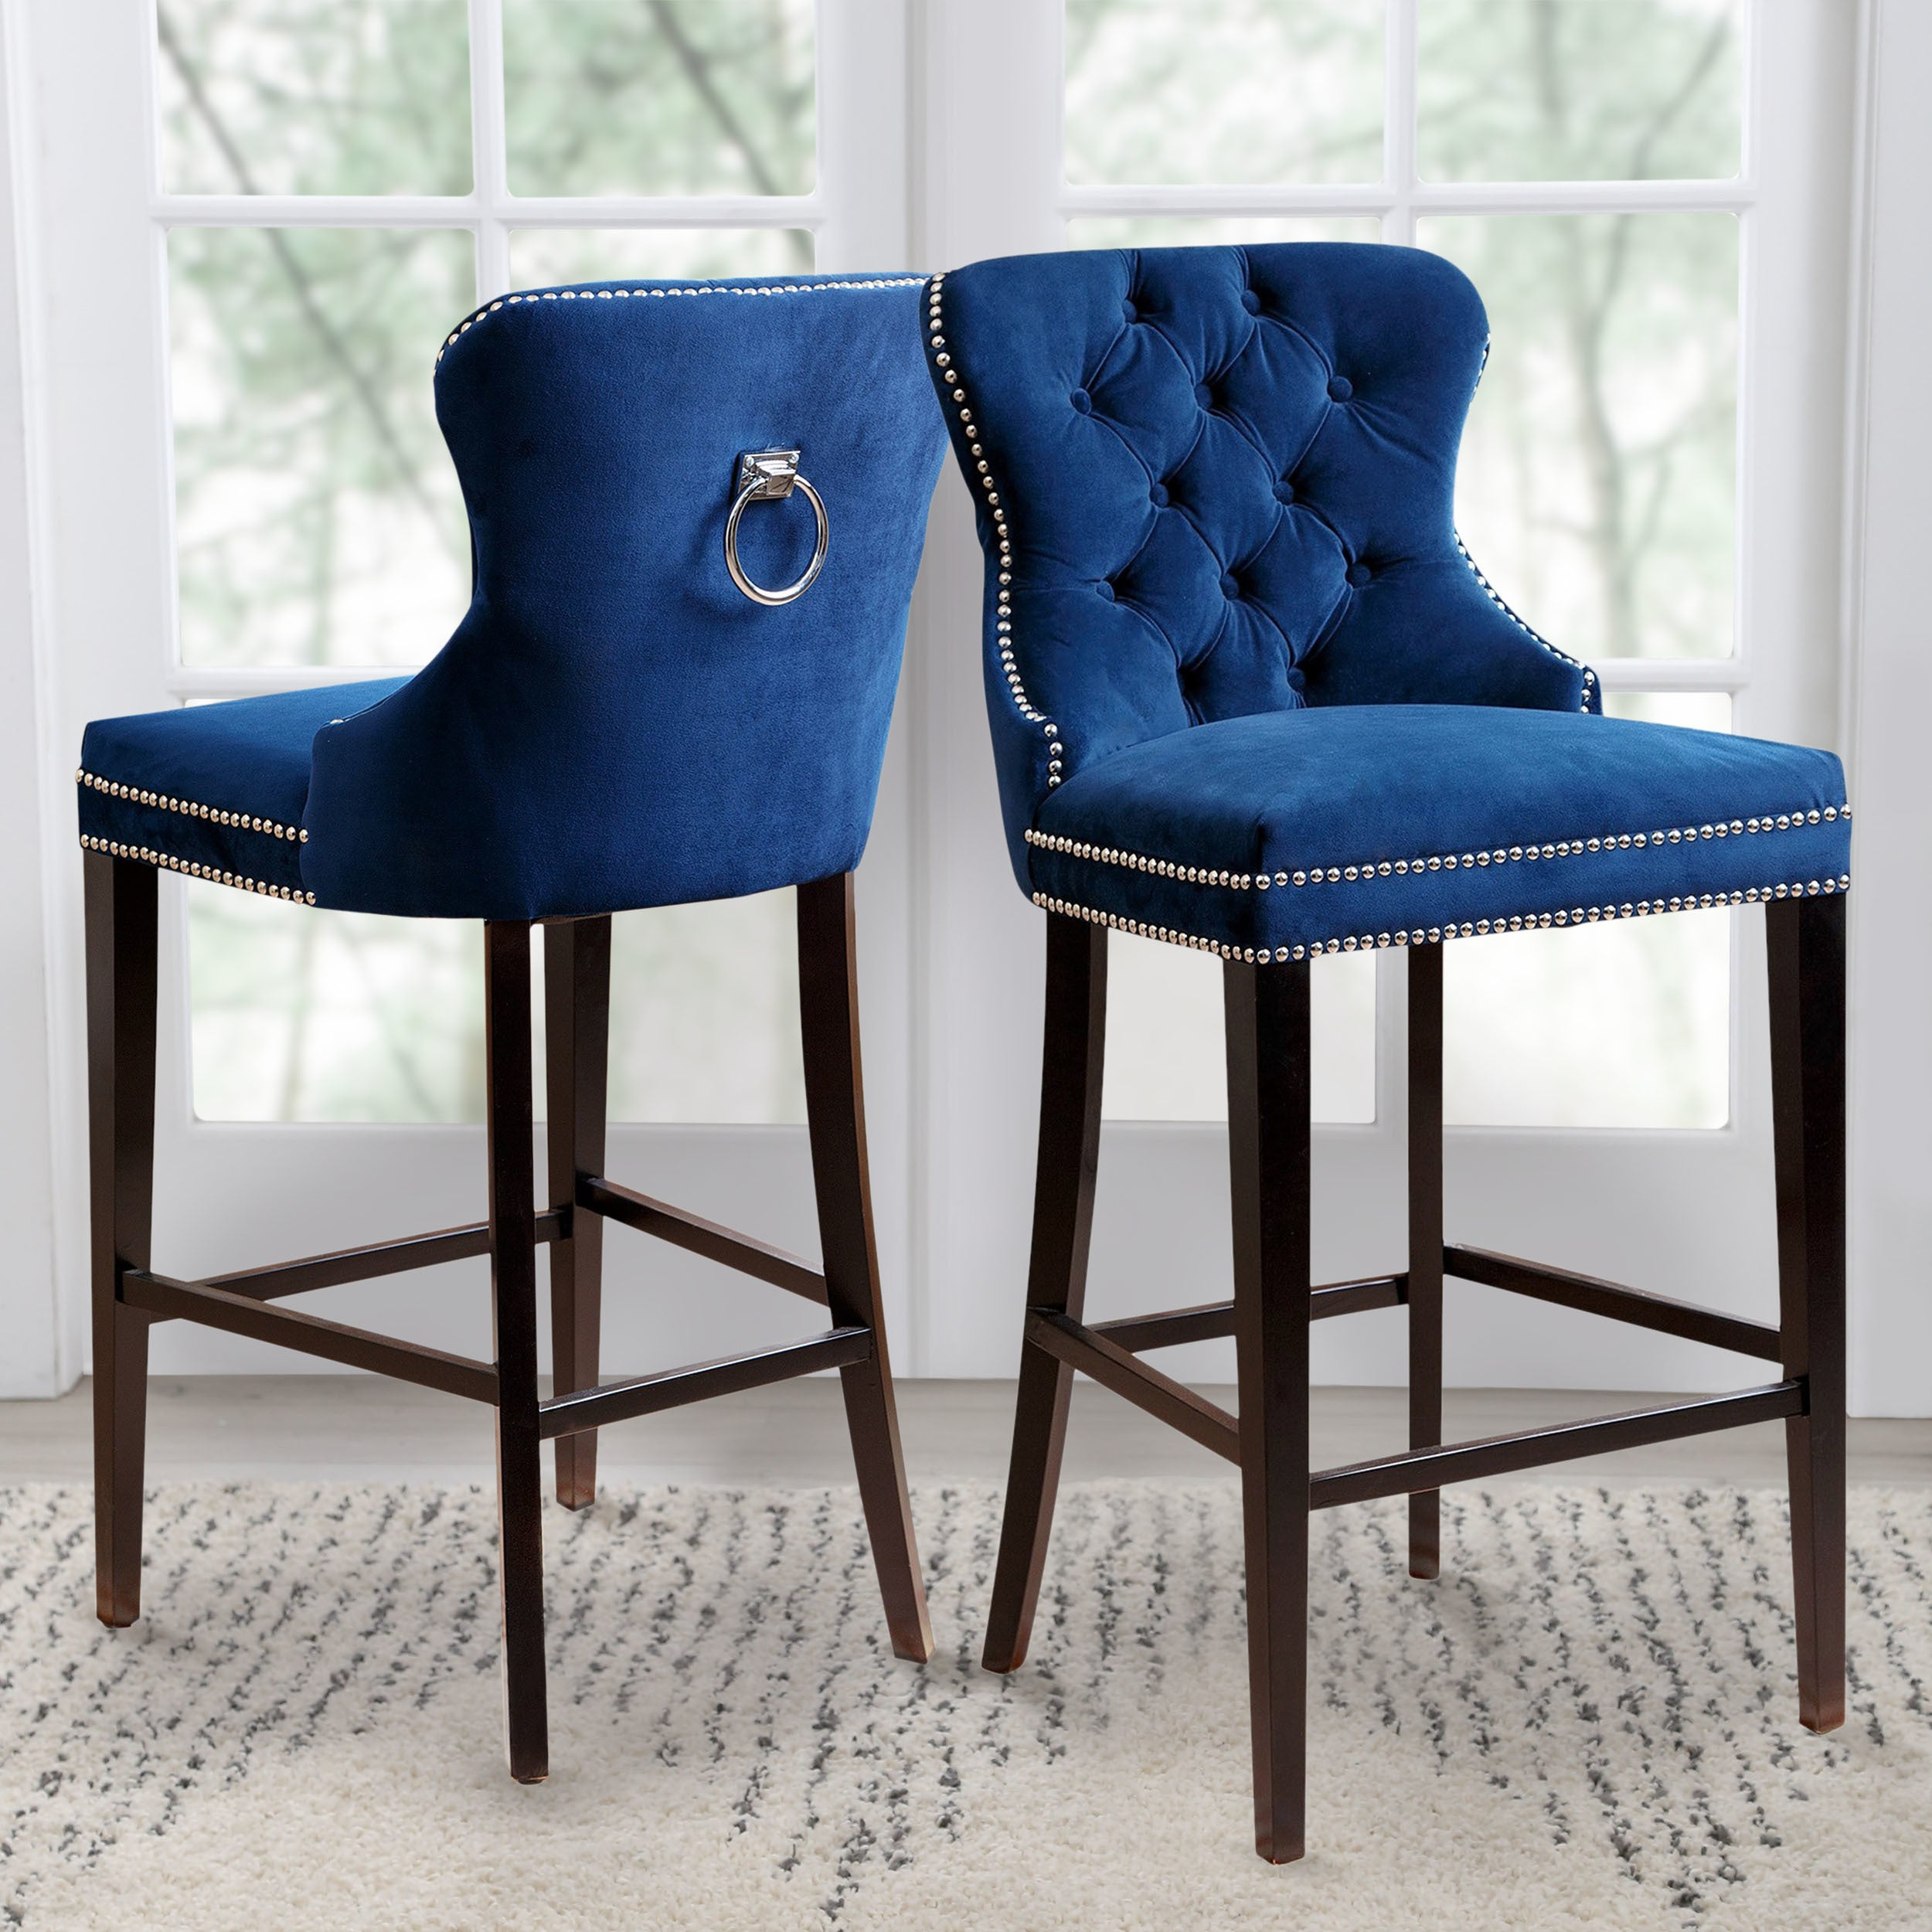 Cool Abbyson Versailles 30 Inch Navy Blue Tufted Bar Stool Dailytribune Chair Design For Home Dailytribuneorg